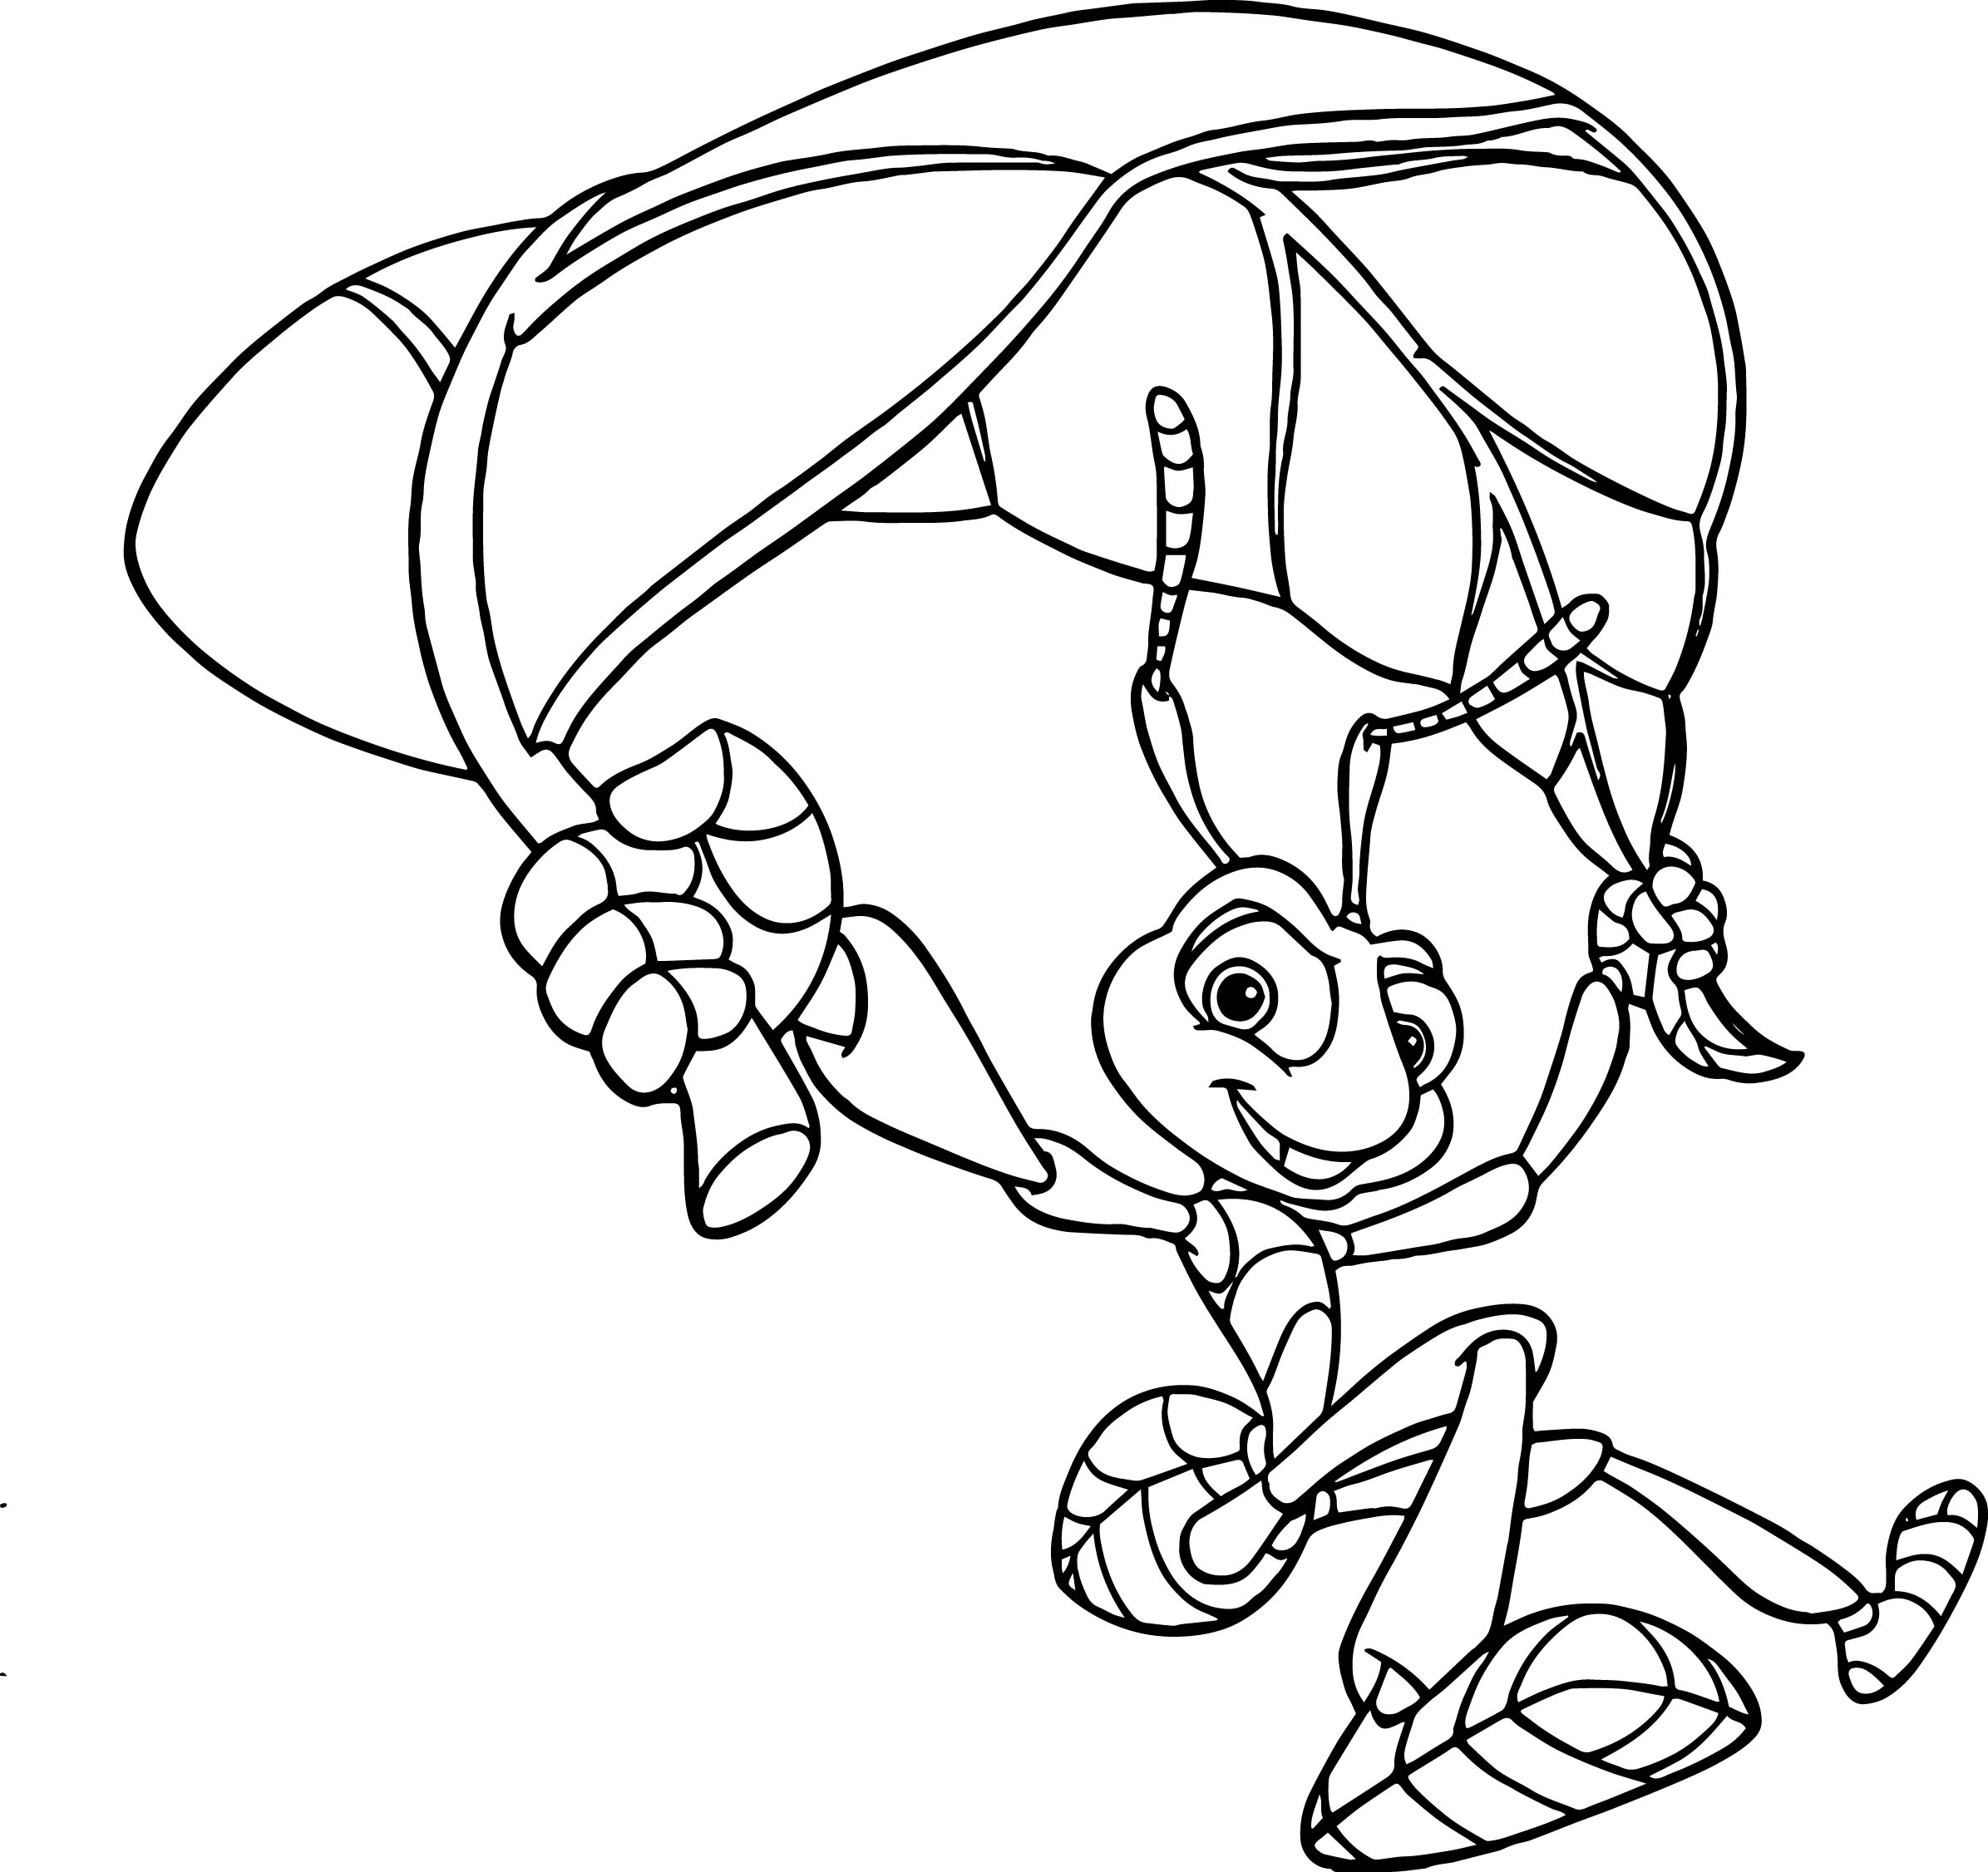 A bugs life coloring page for Bugs life coloring pages